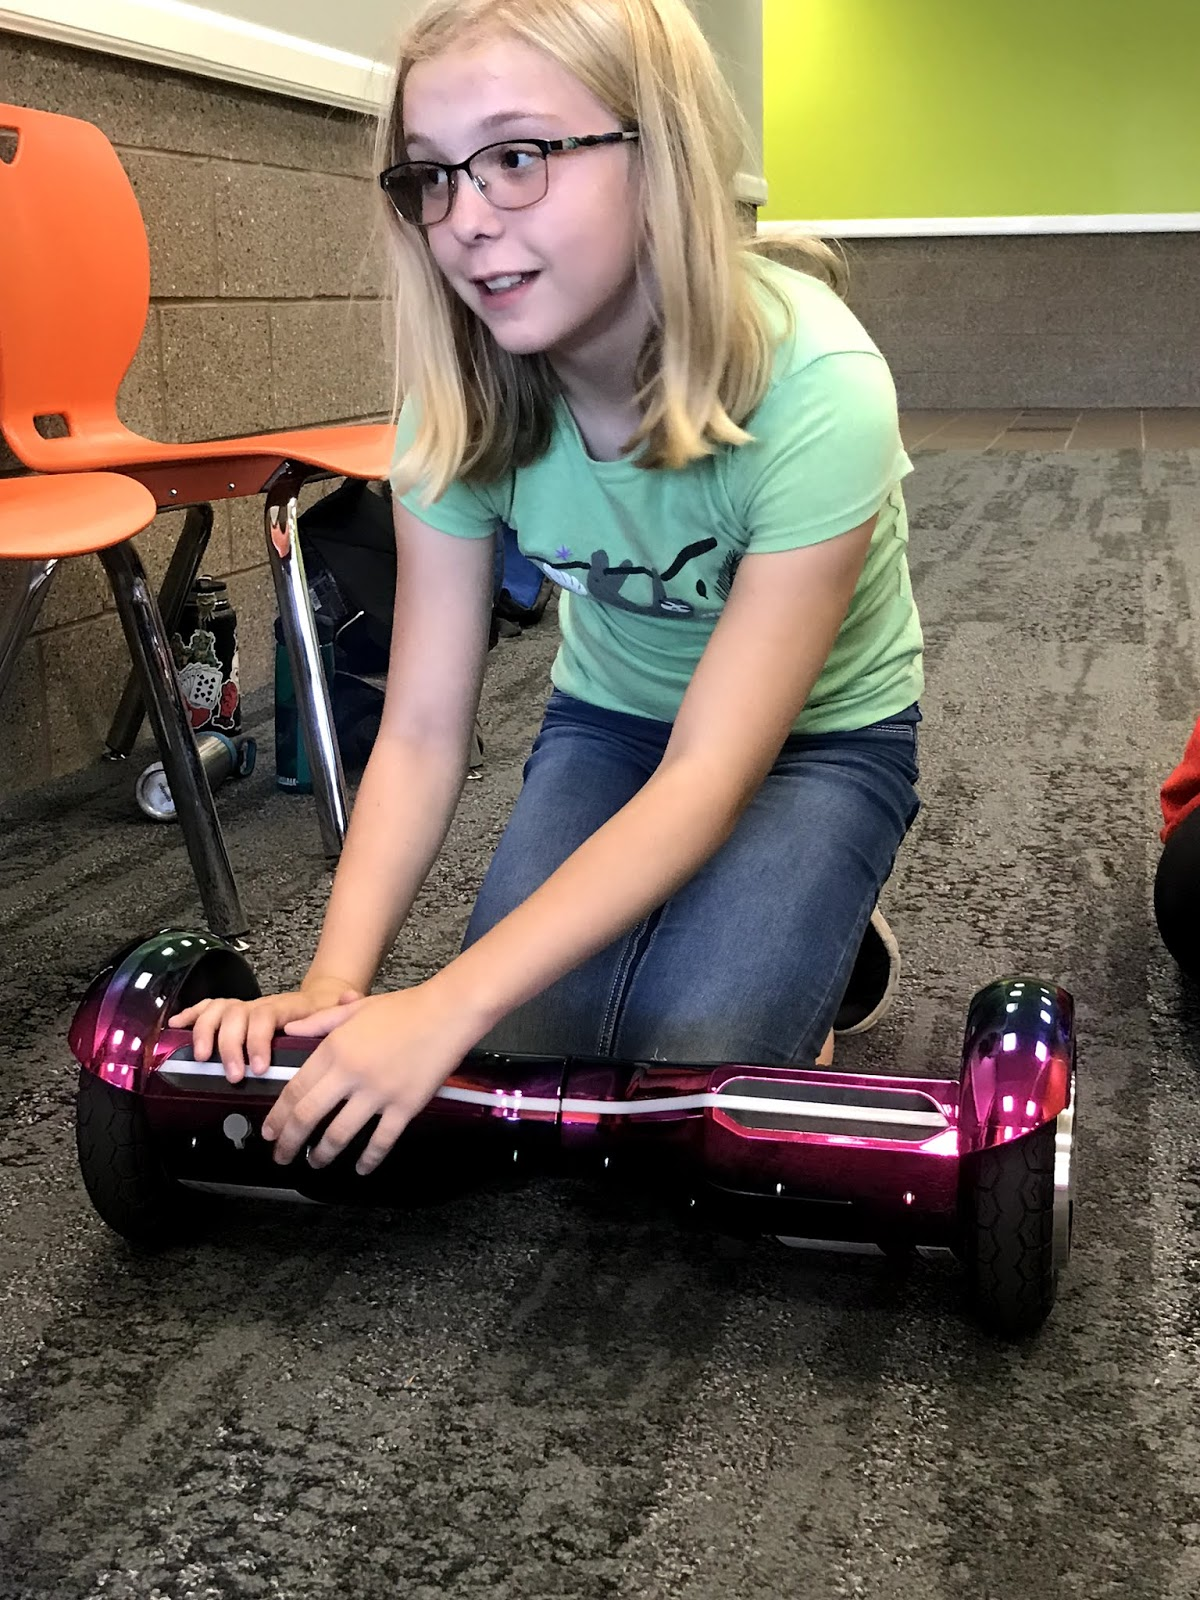 a female student kneels down and checks out a hoverboard